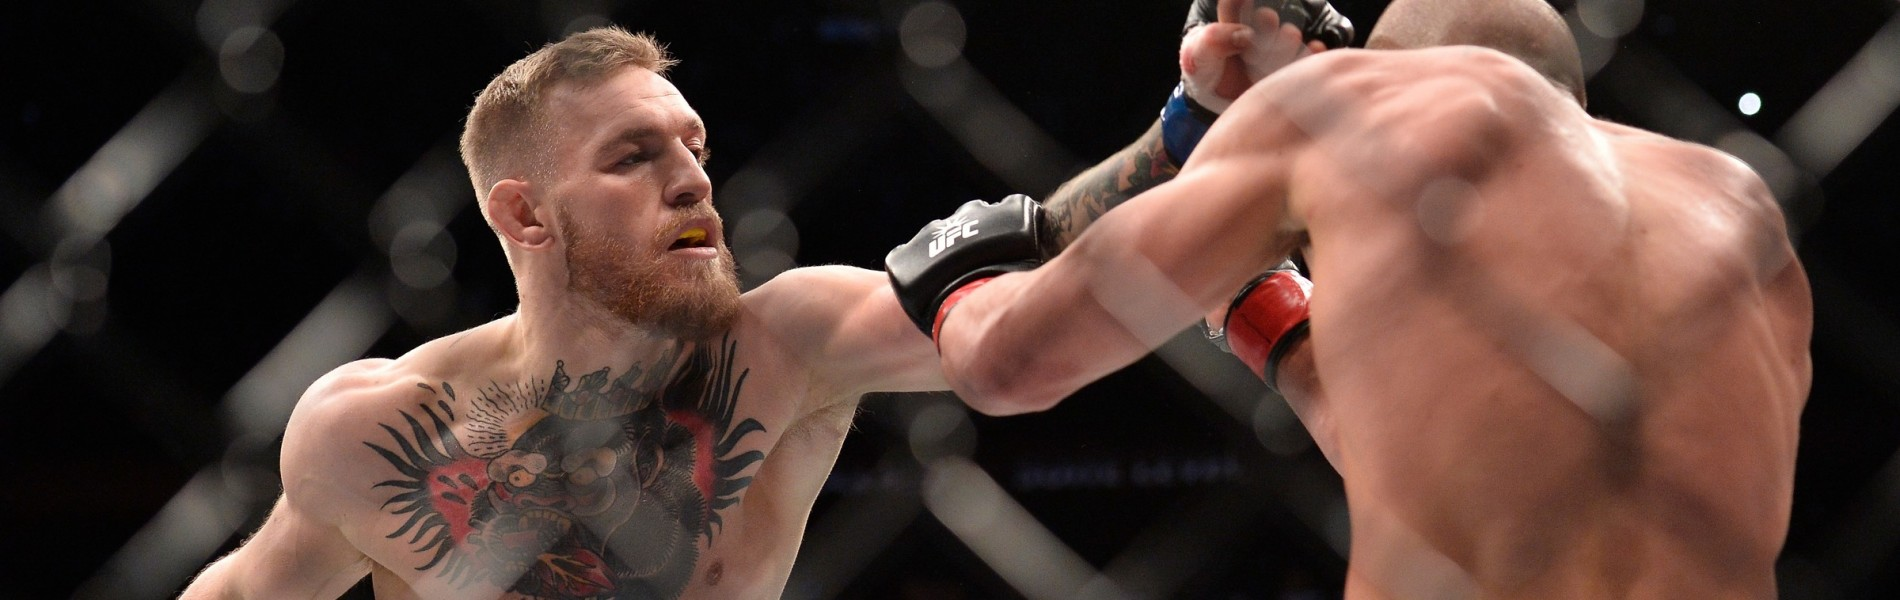 Conor McGregor of Ireland punches Eddie Alvarez in their UFC lightweight championship fight during the UFC 205 event at Madison Square Garden on November 12, 2016 in New York City.